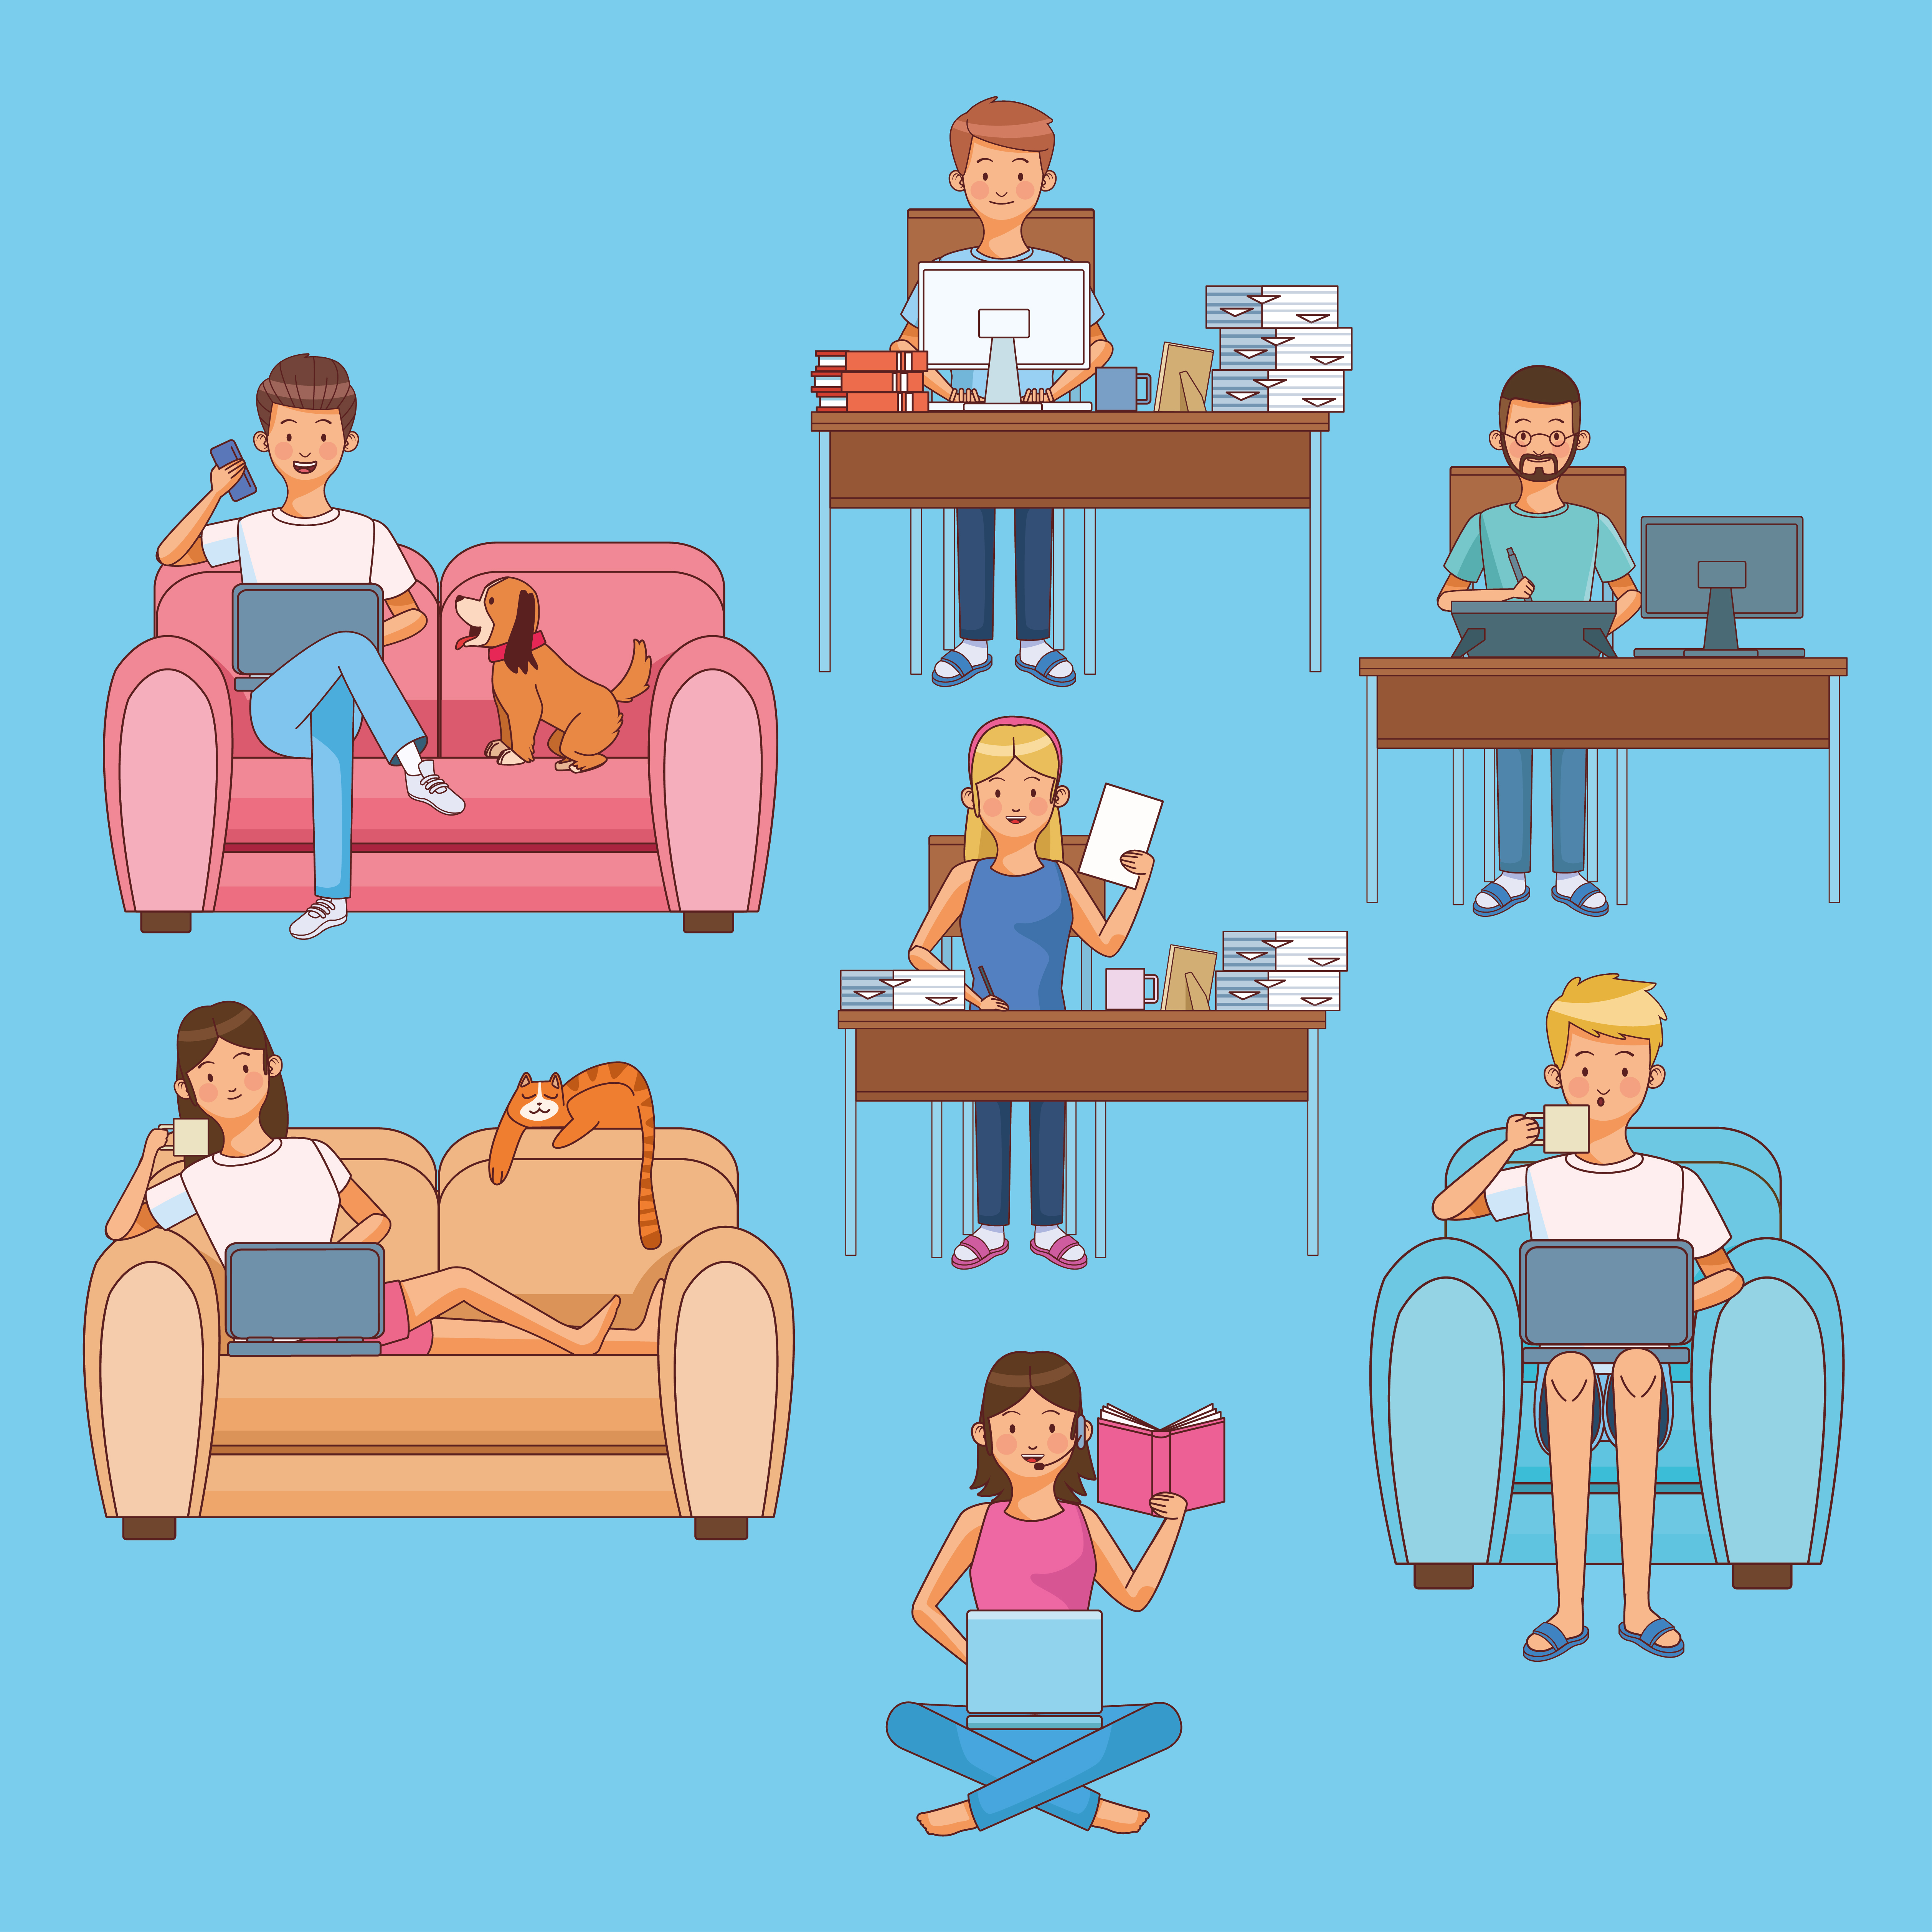 Set of scenes of people working at home